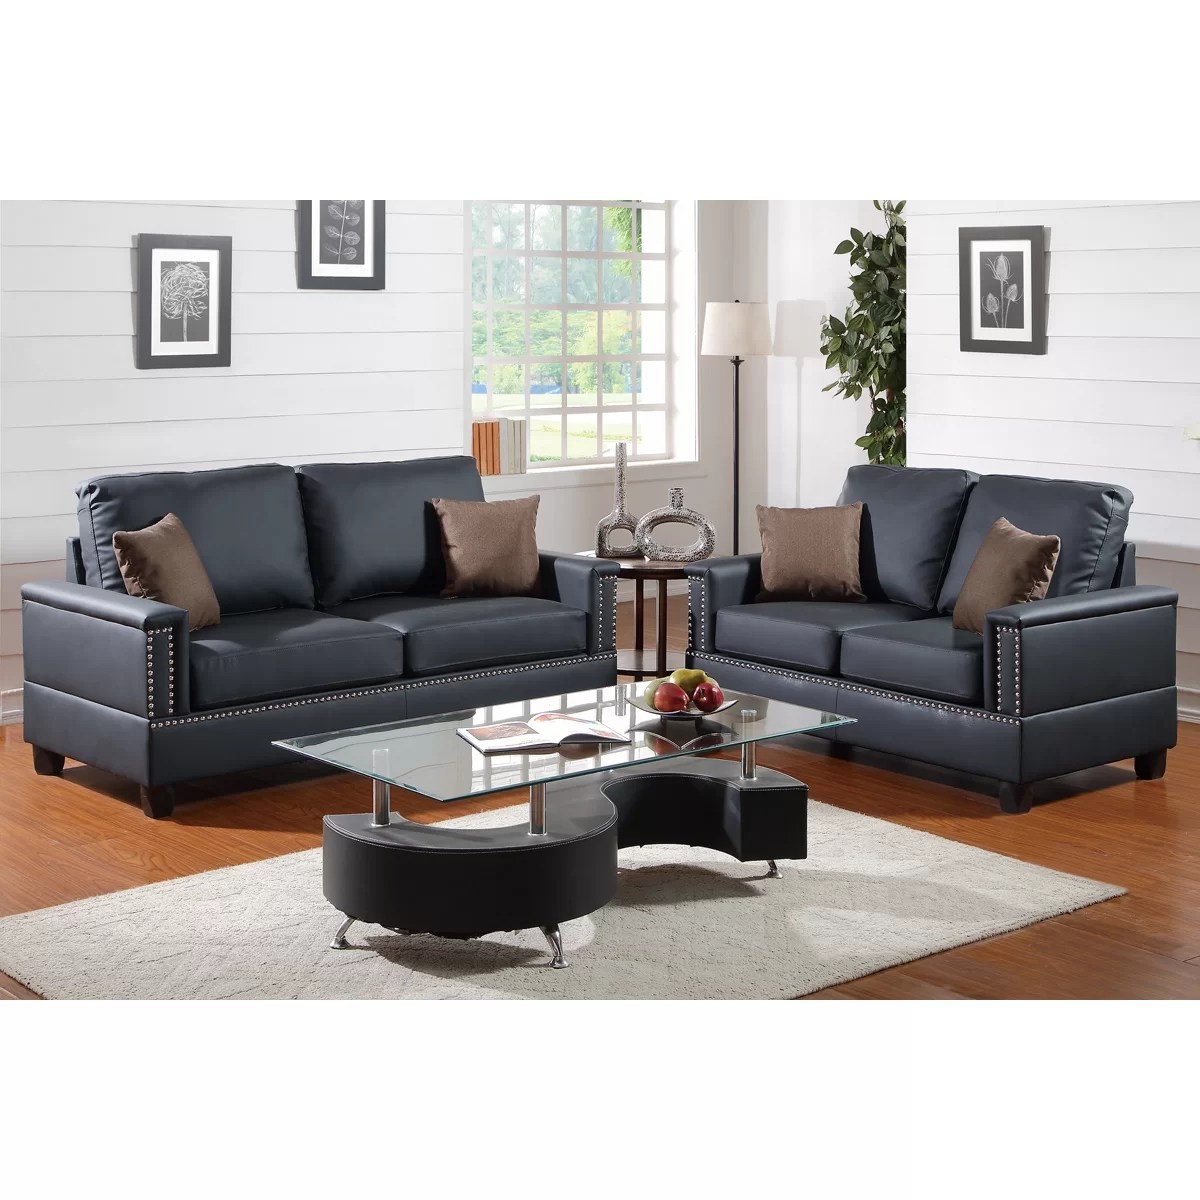 bobkona sectional sofa embly instructions latest wooden set design poundex norris 2 piece and loveseat